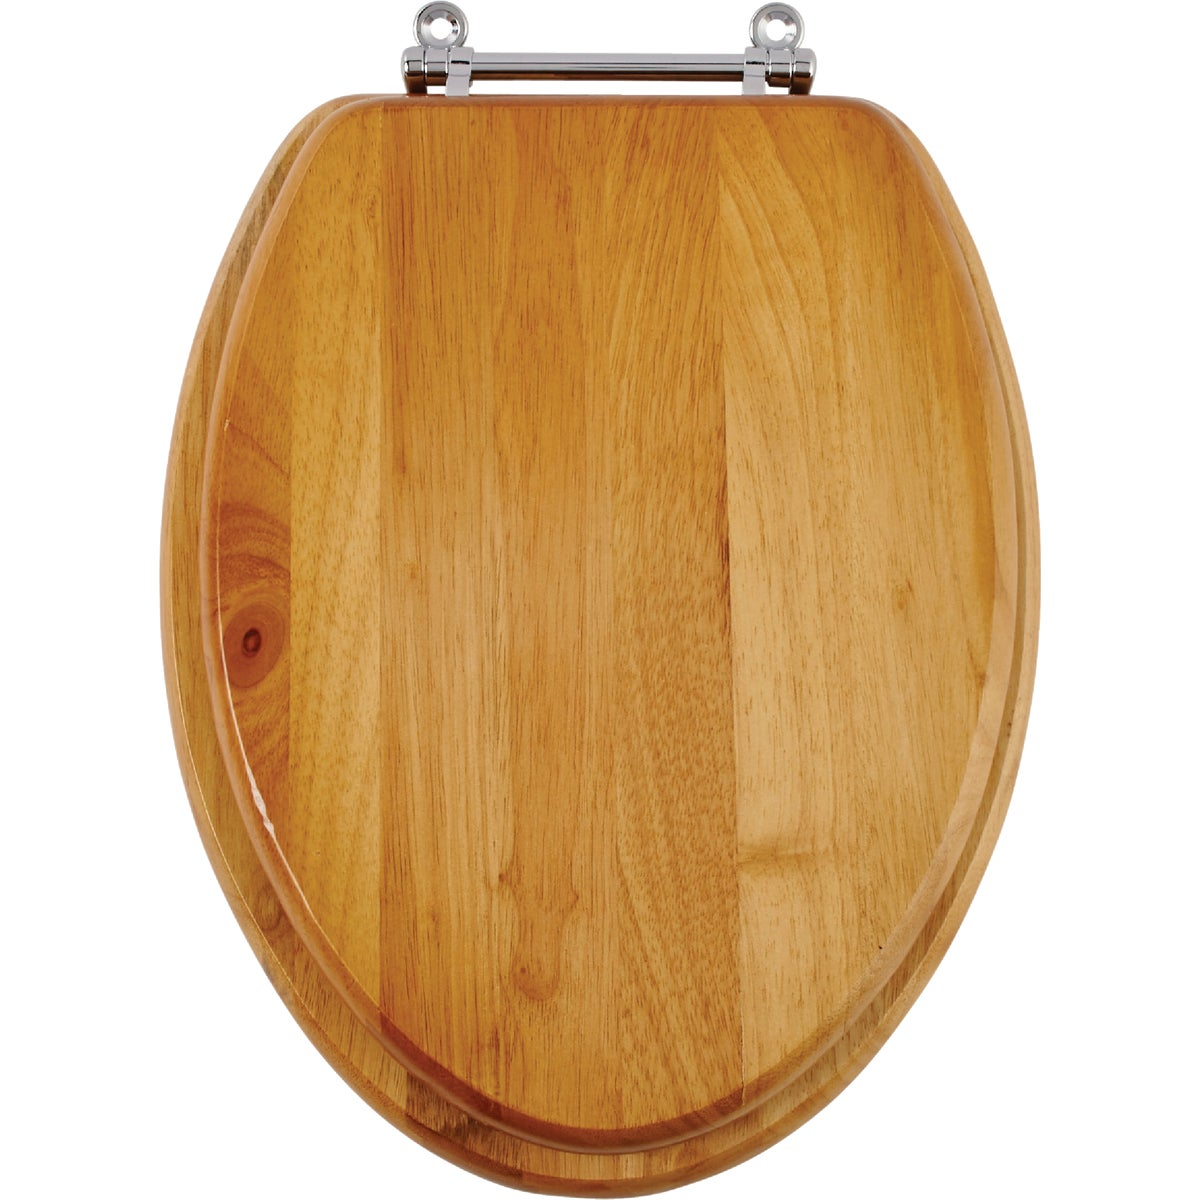 OAK ELONG TOILET SEAT - 10-007 by Do it Best Global Sourcing